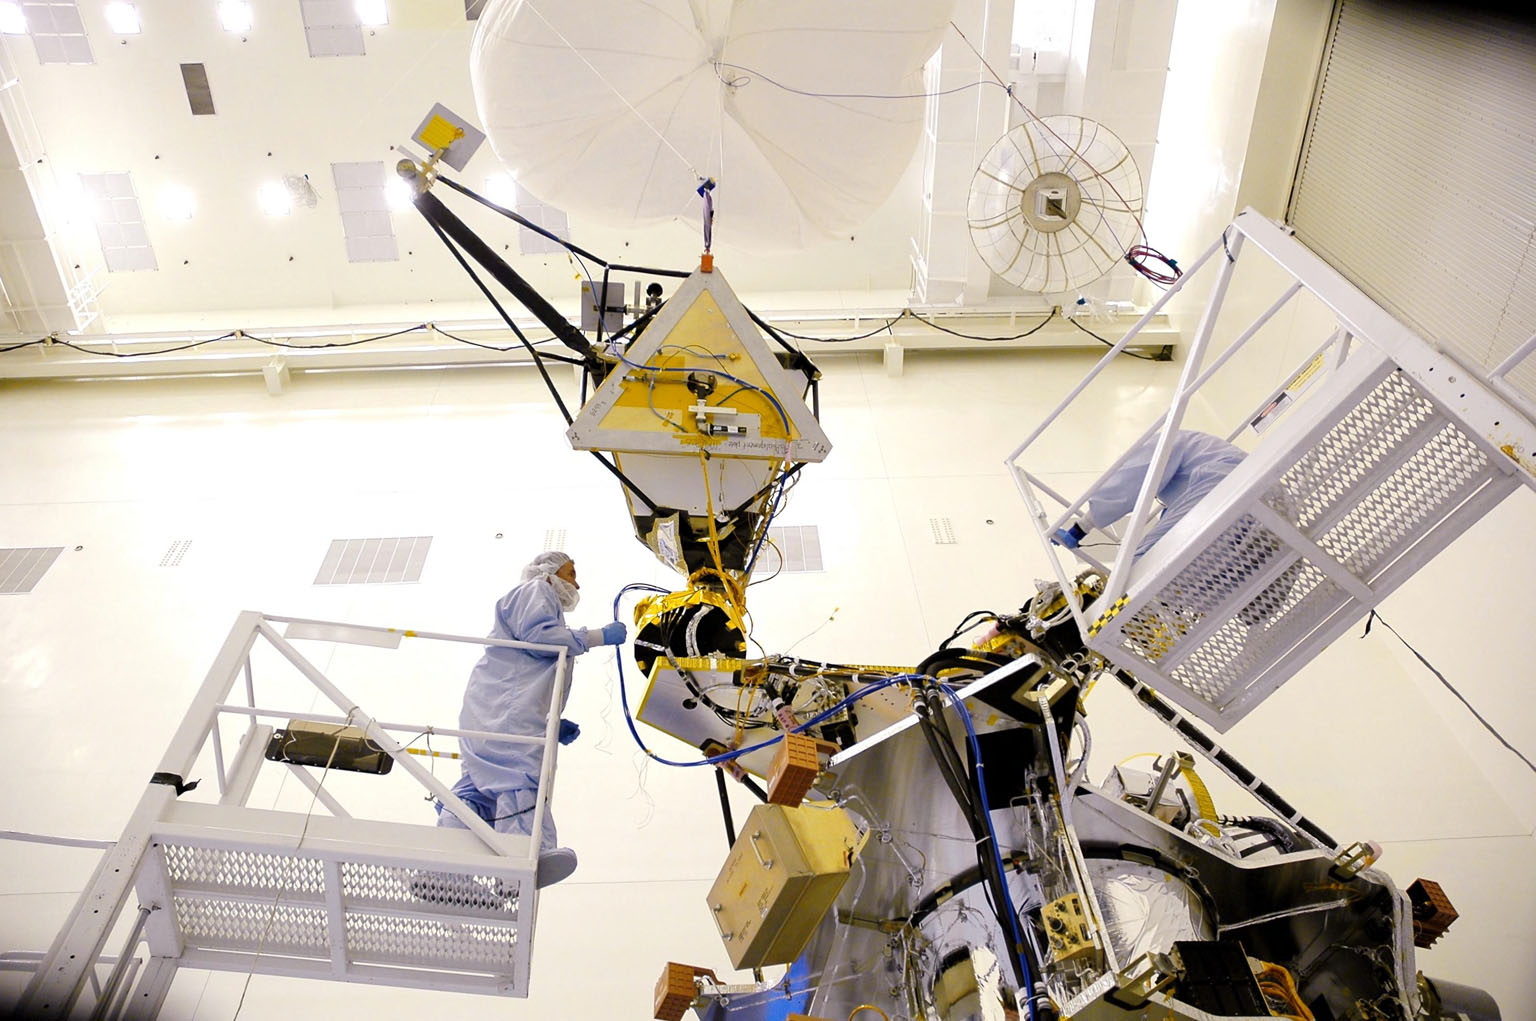 KENNEDY SPACE CENTER, FLA. - In the Payload Hazardous Servicing Facility, workers from Lockheed Martin prepare to conduct a gimbal full range of motion test on the Mars Reconnaissance Orbiter (MRO) high-gain antenna. The MRO was built by Lockheed Martin for JPL. It is the next major step in Mars exploration and scheduled for launch from Cape Canaveral Air Force Station in a window opening Aug. 10. The MRO is an important next step in fulfilling NASA?s vision of space exploration and ultimately sending human explorers to Mars and beyond.